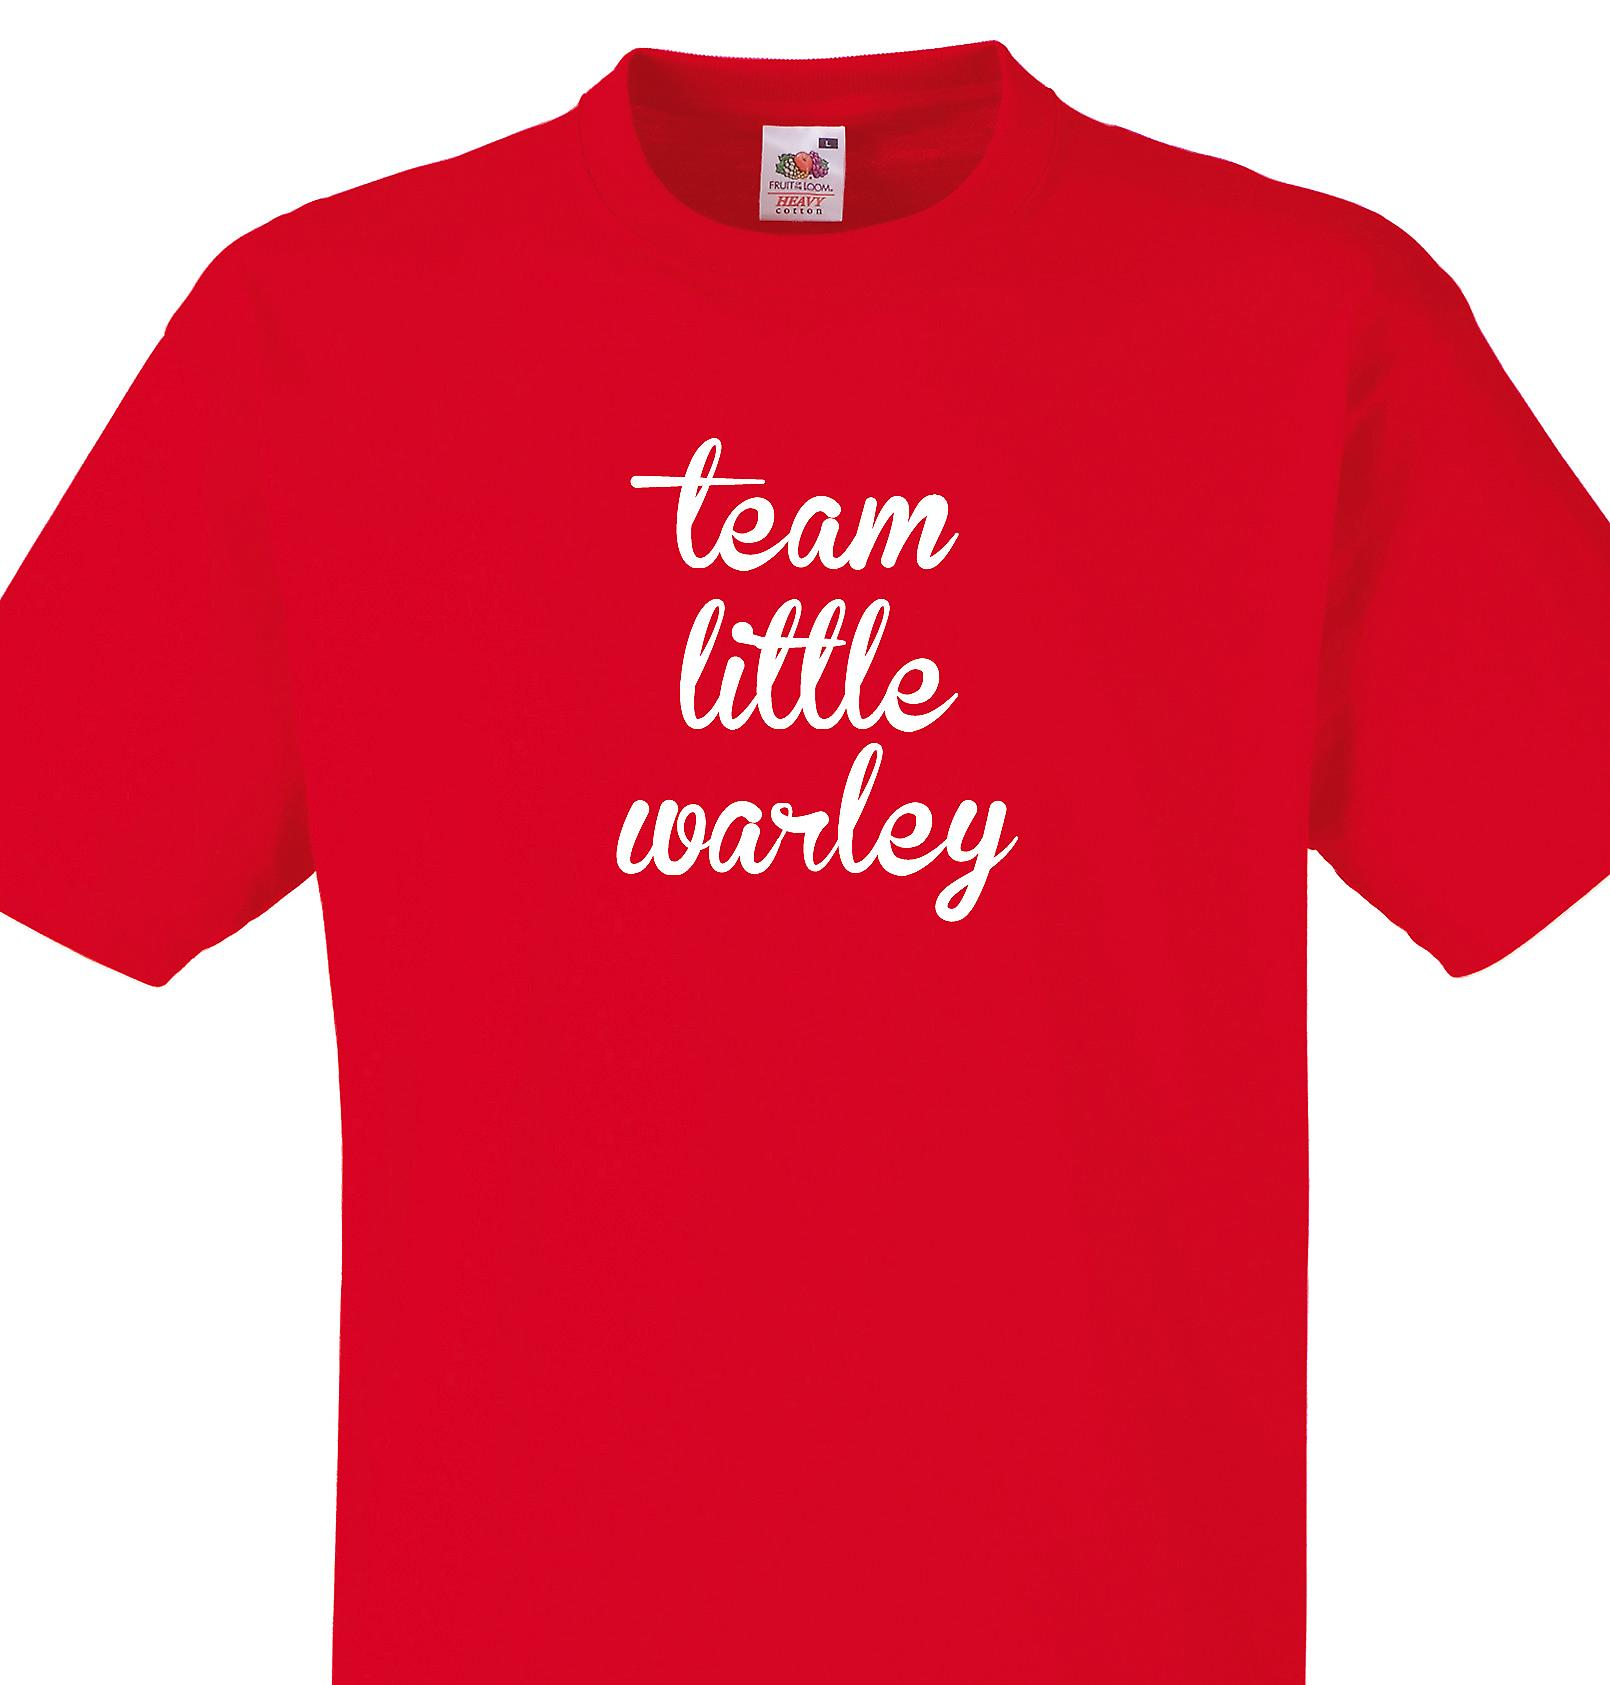 Team Little warley Red T shirt